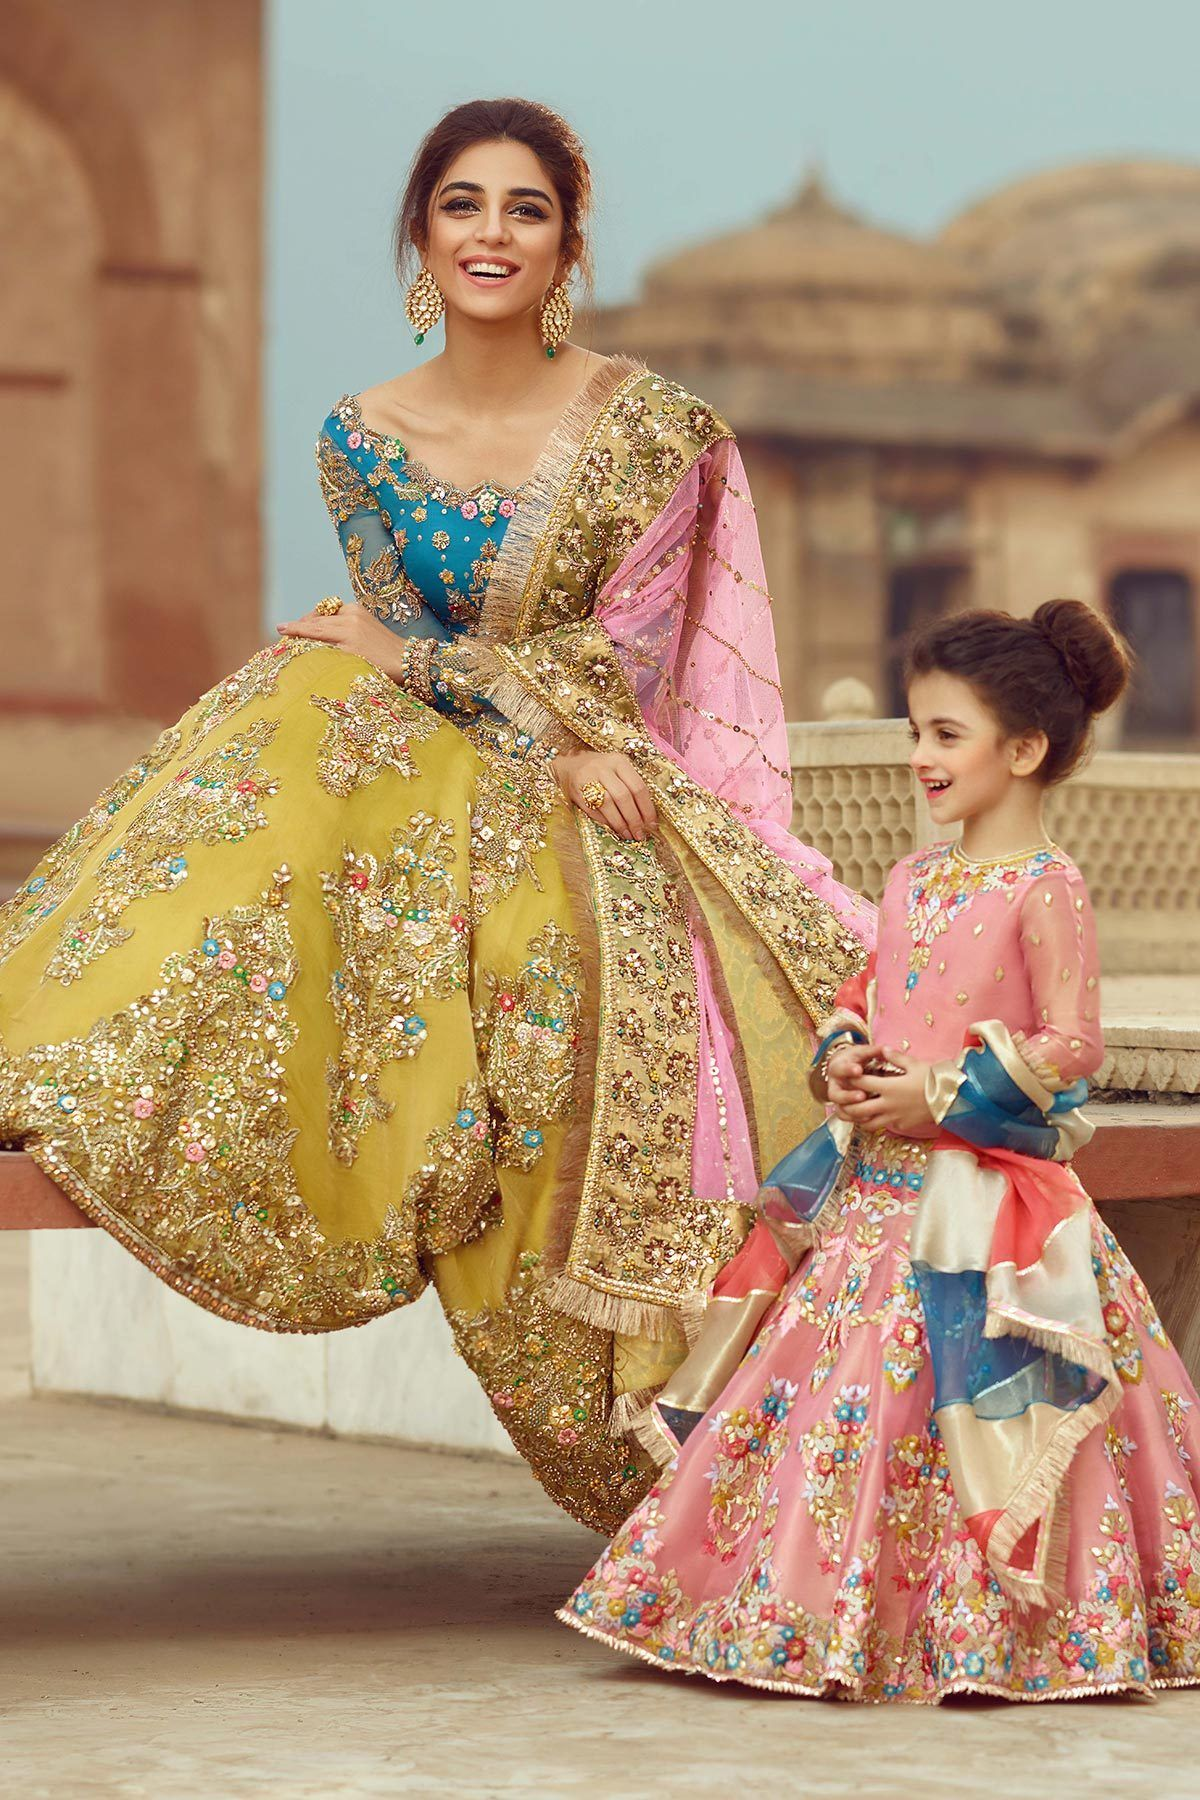 Pale Yellow And Firozi Wedding Lehenga Party Wear Indian Dresses Wedding Dresses For Girls Pakistani Bridal Dresses